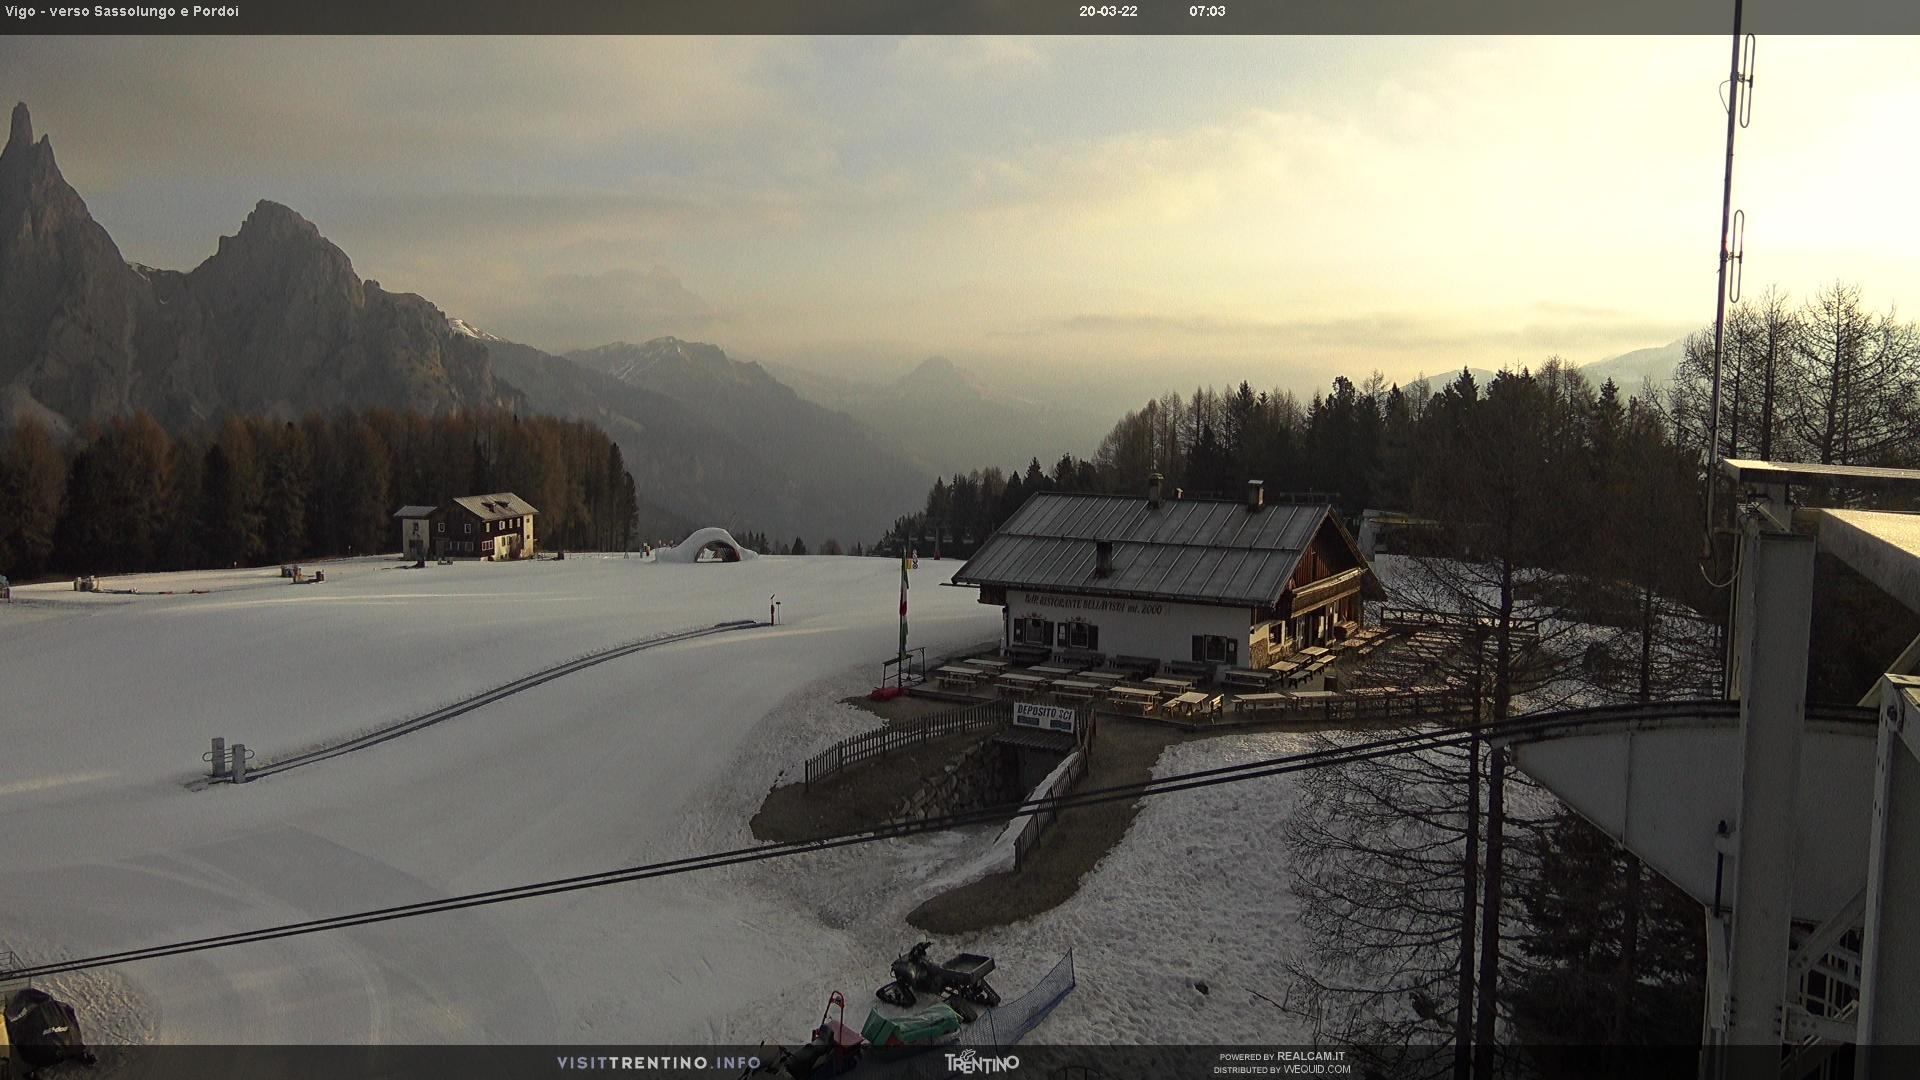 Webcam Vigo di Fassa - Catinaccio - Towards Sassolungo and Sass Pordoi - Altitude: 1,997 metresArea: Ciampedìe Panoramic viewpoint: static webcam. Kinderpark Ciampedie and